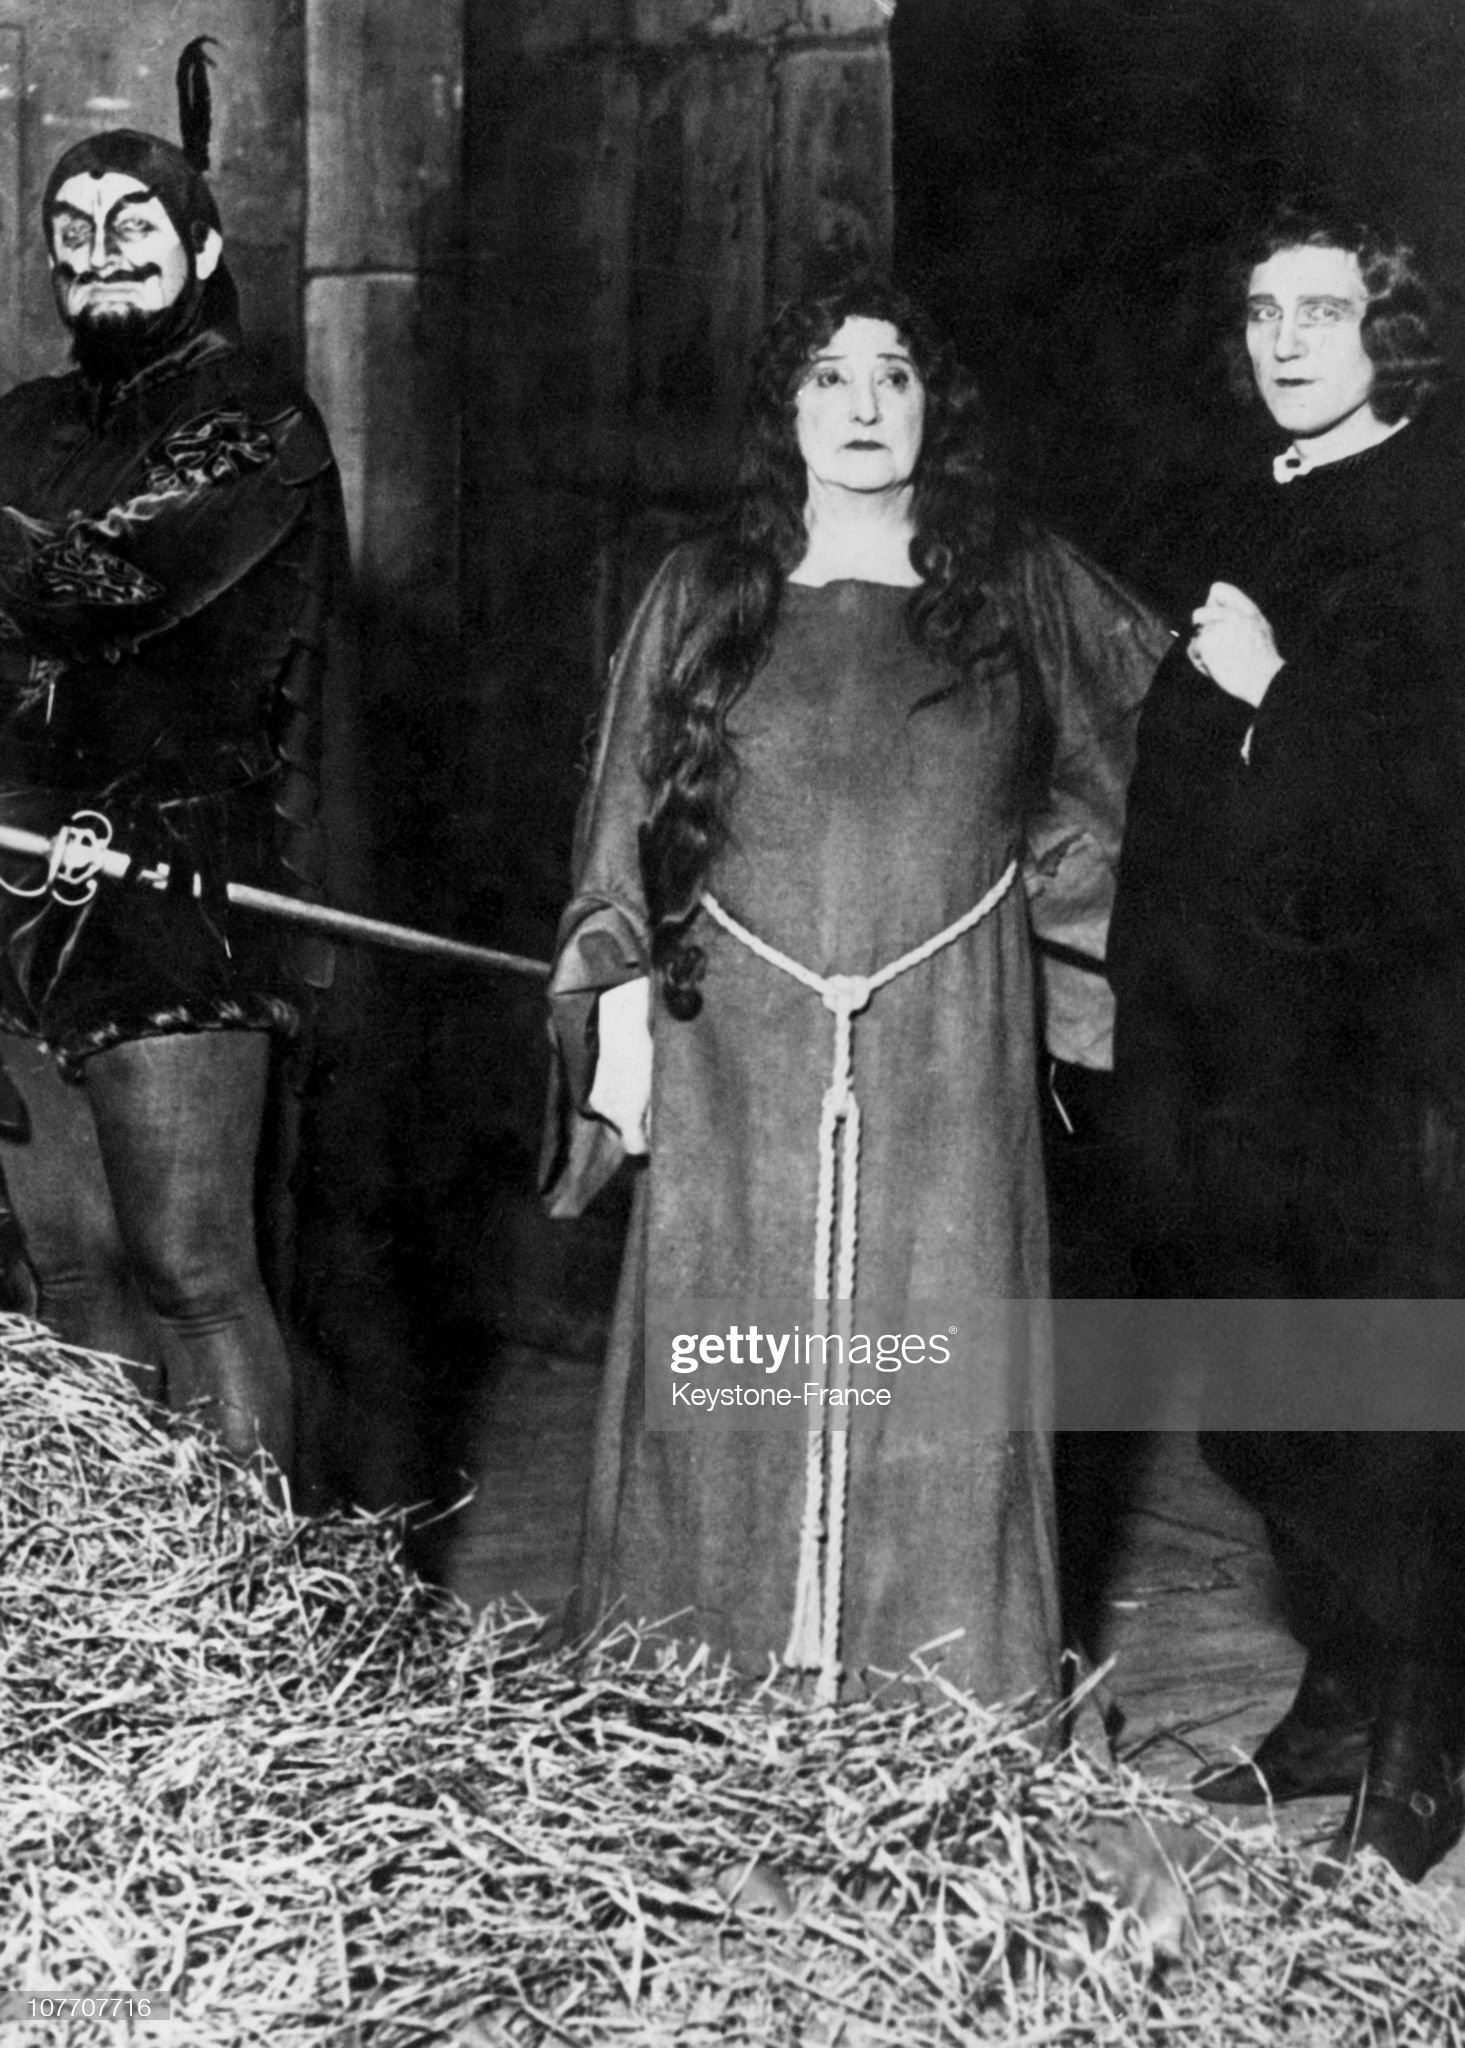 Nellie Melba In The Role Of Marguerite In Faust In 1920 : ニュース写真